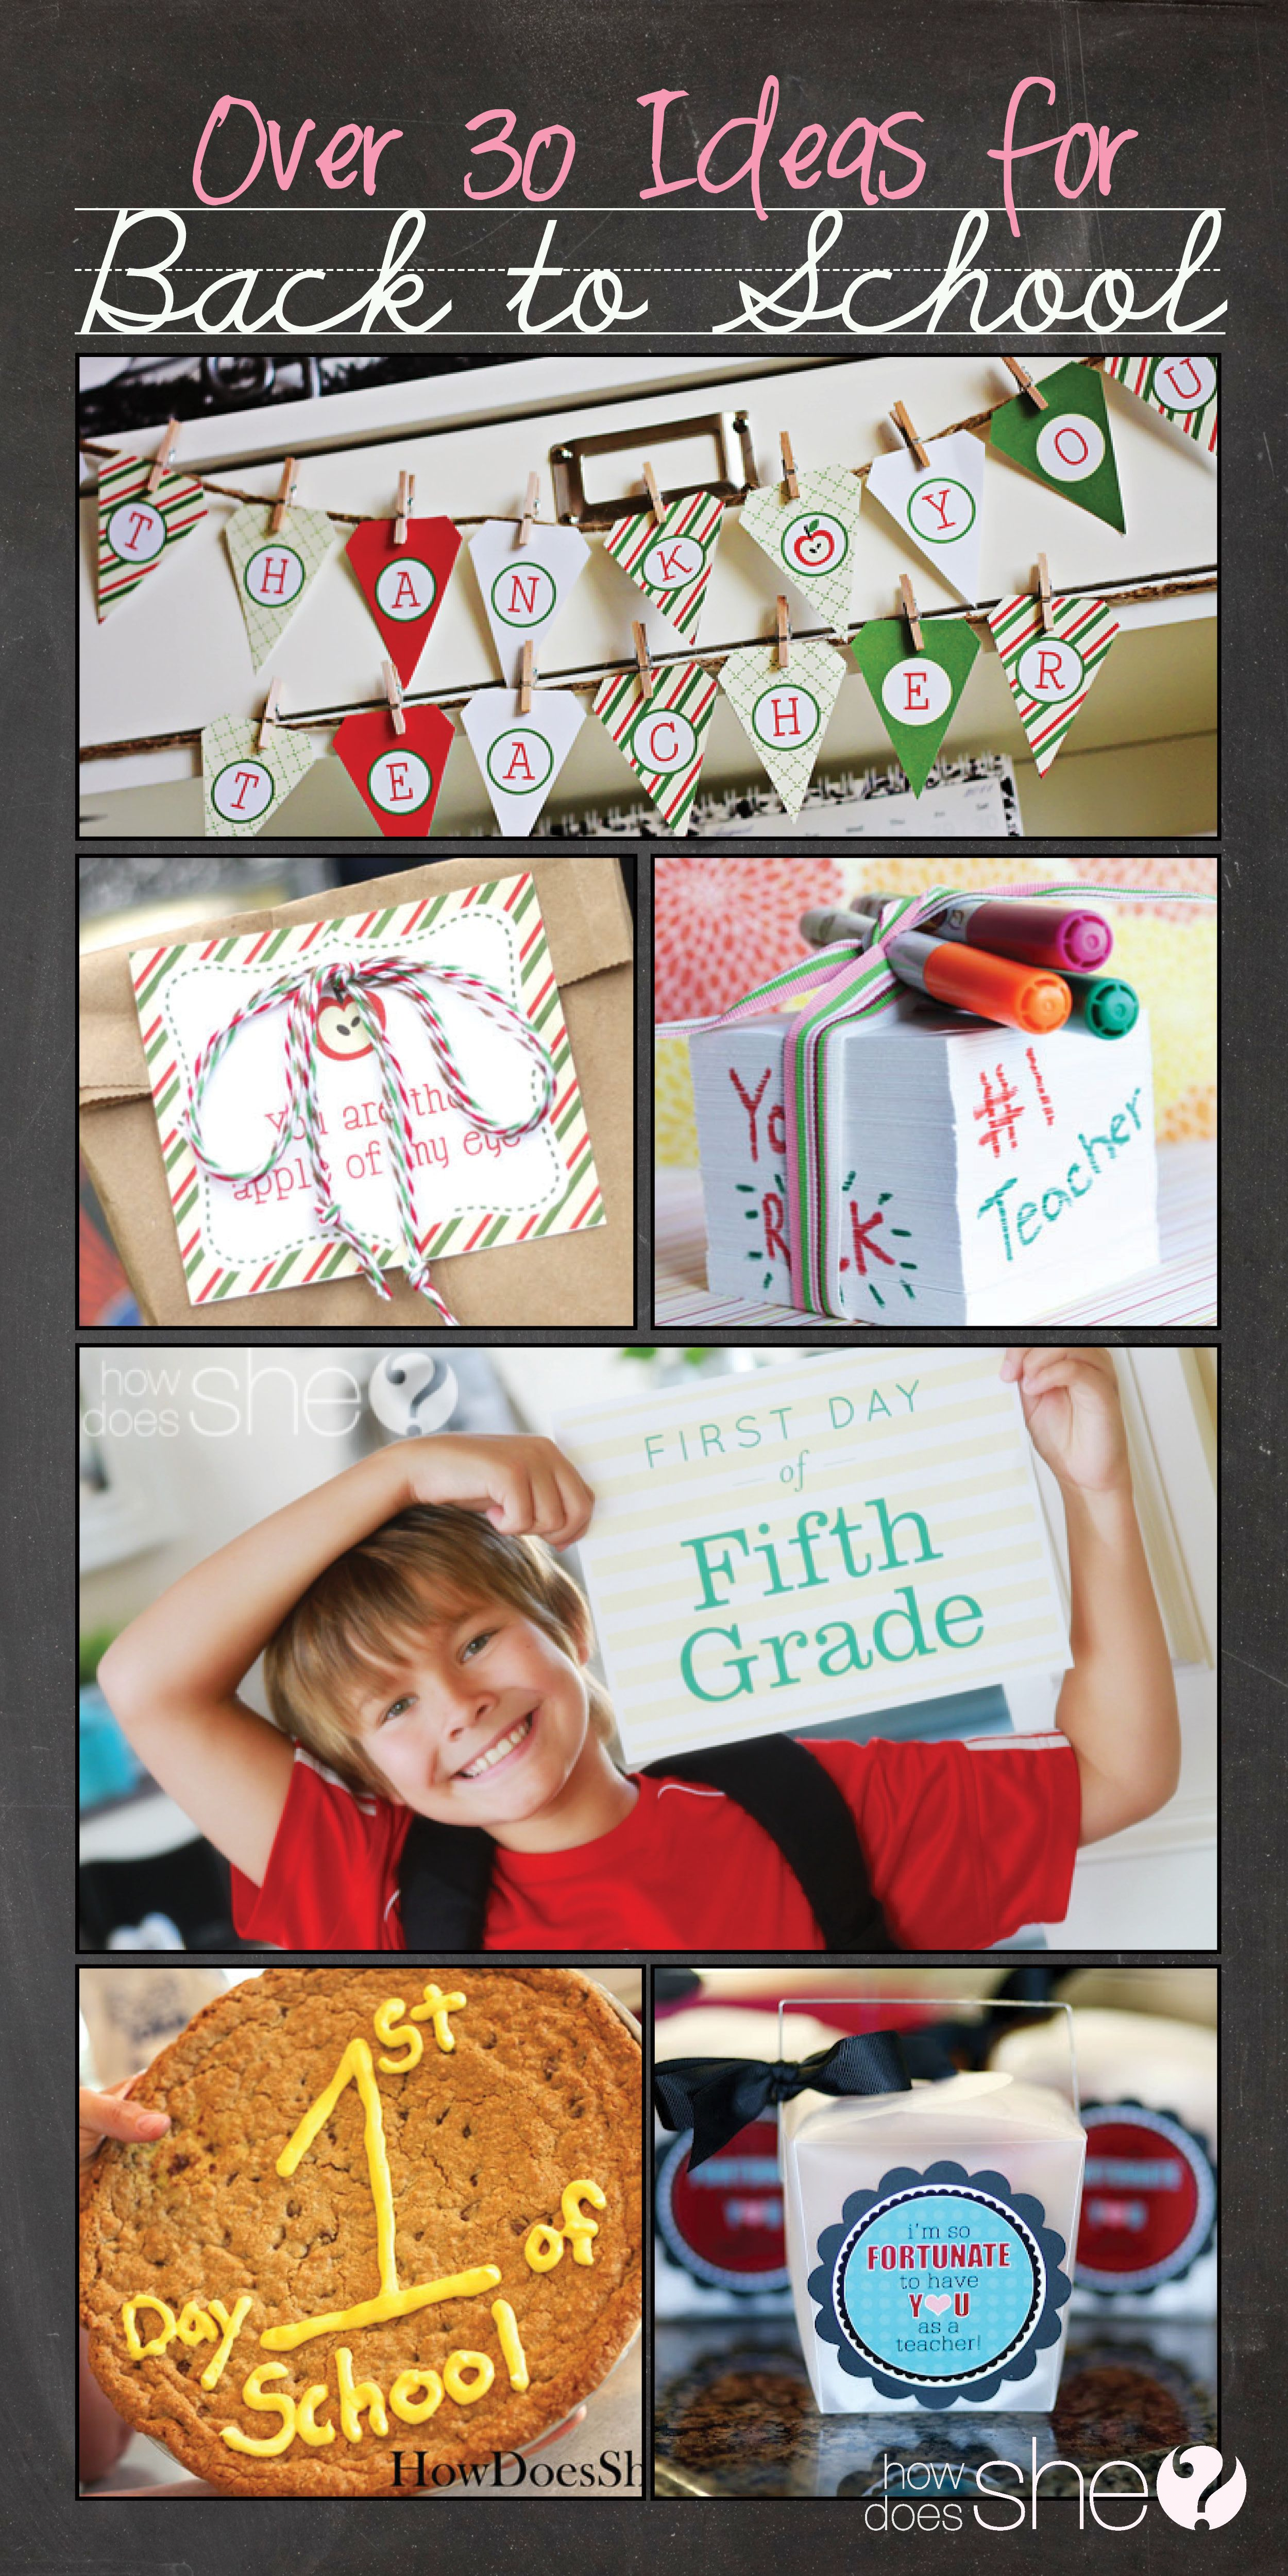 Over 30 Ideas For Back To School